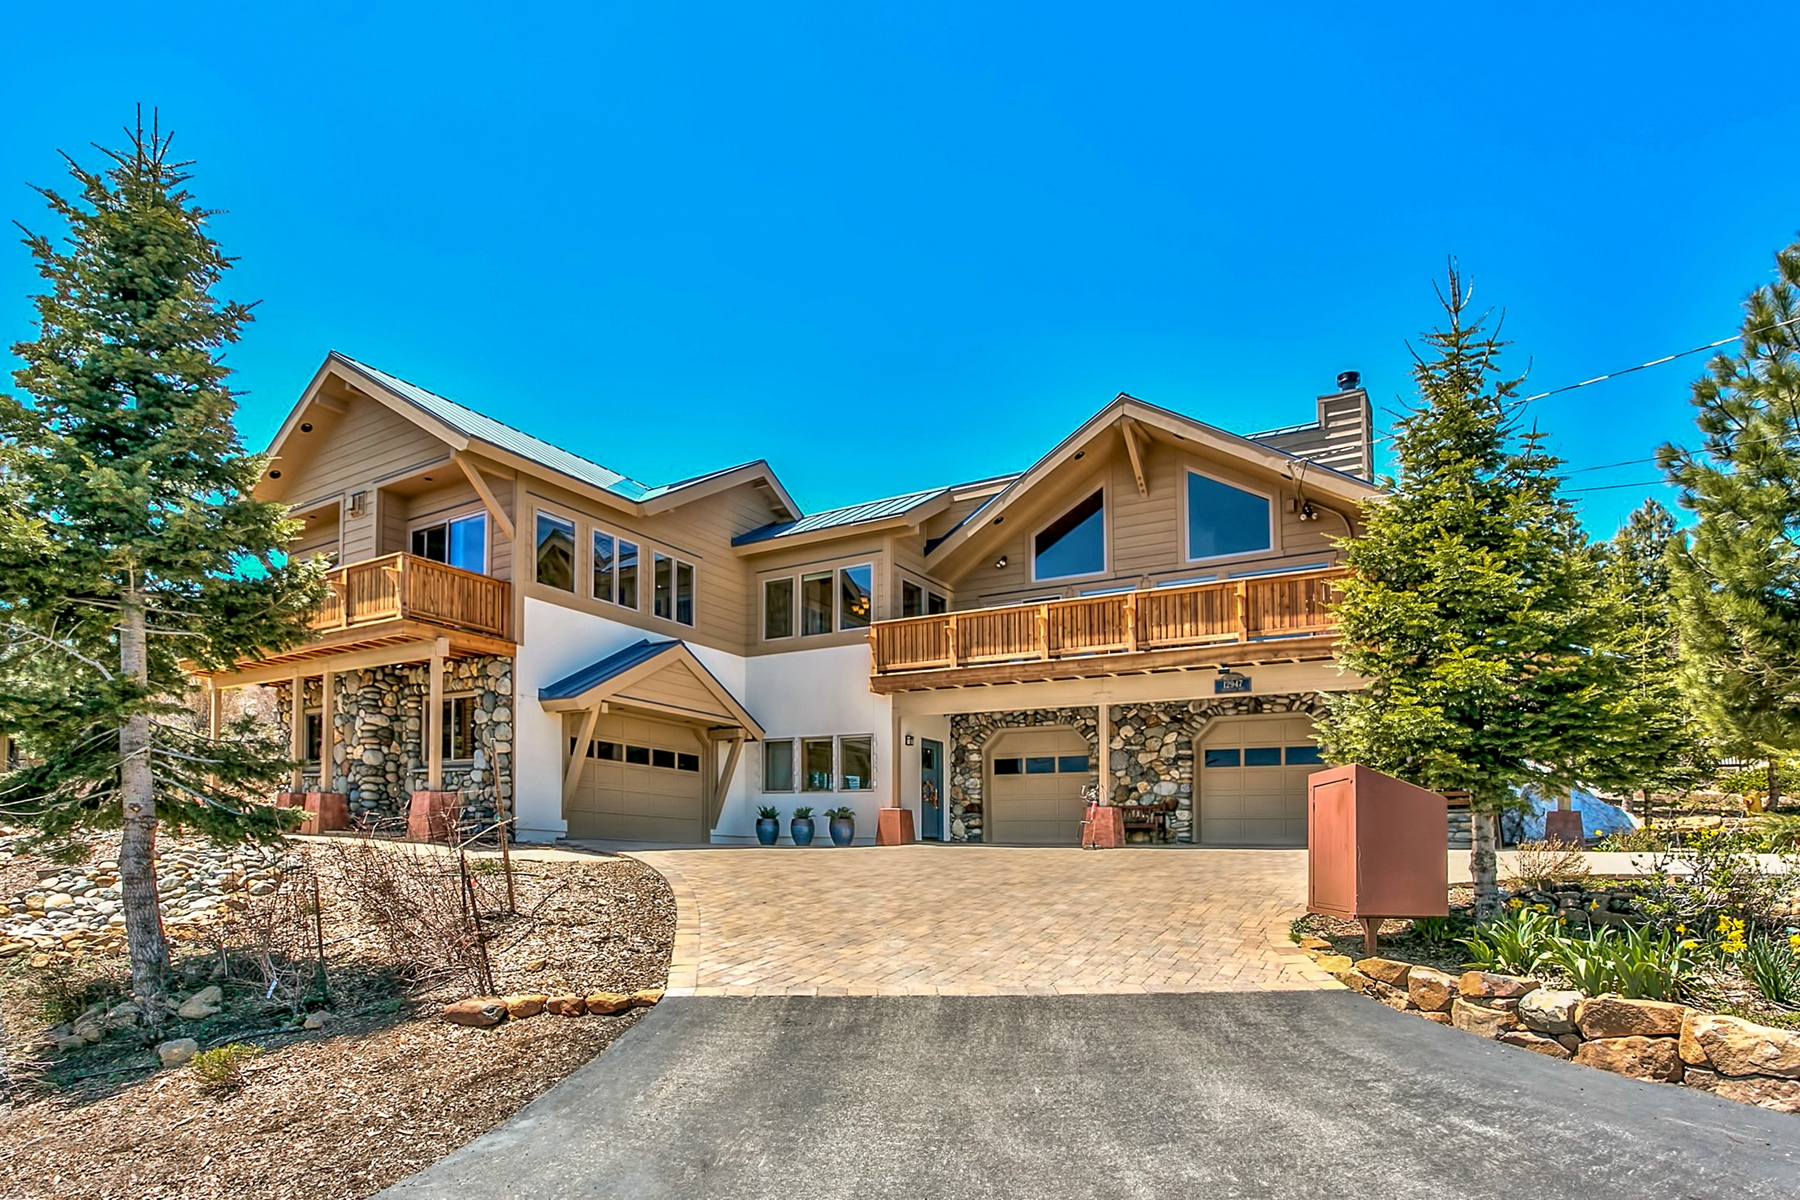 Single Family Home for Active at 12947 Oberwald Way Truckee, California 96161 United States